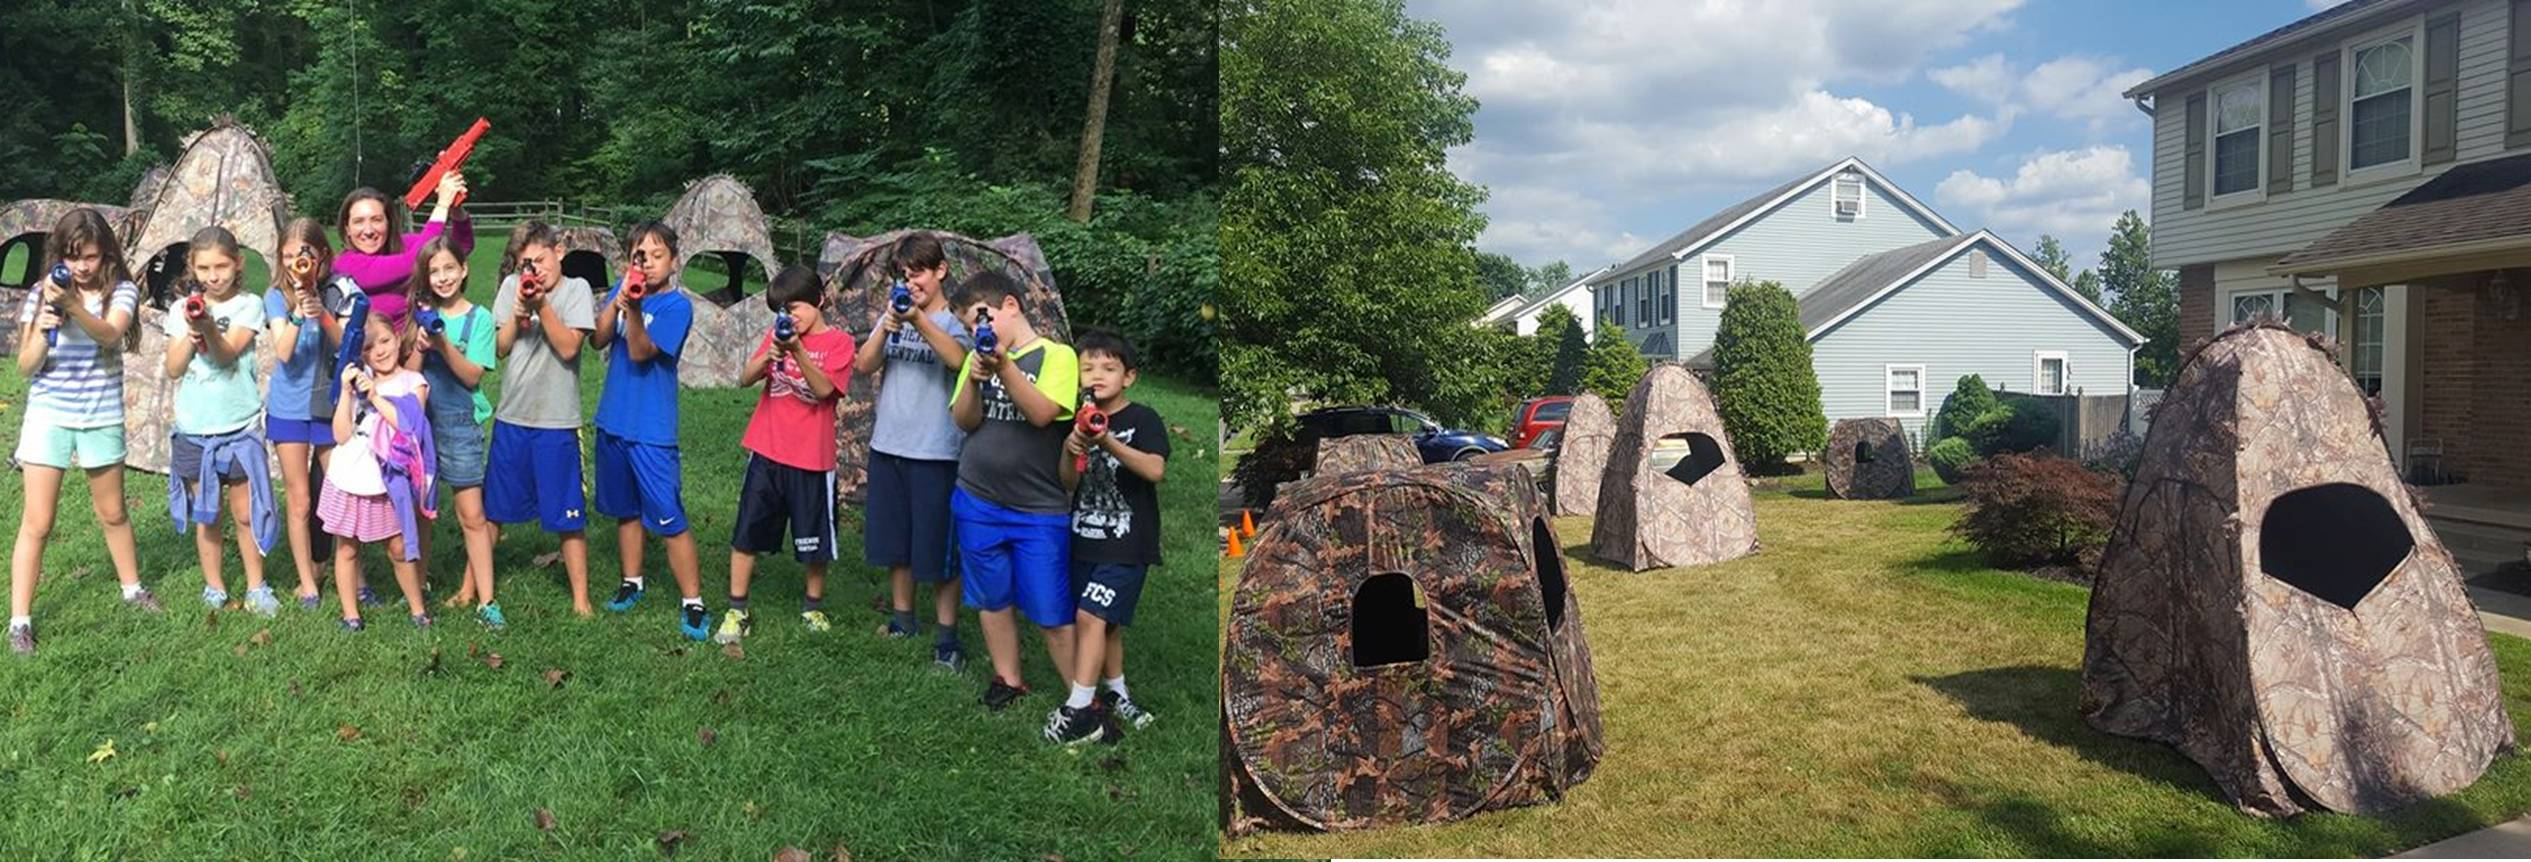 Laser tag party in South New Jersey, Philadelphia and Delaware